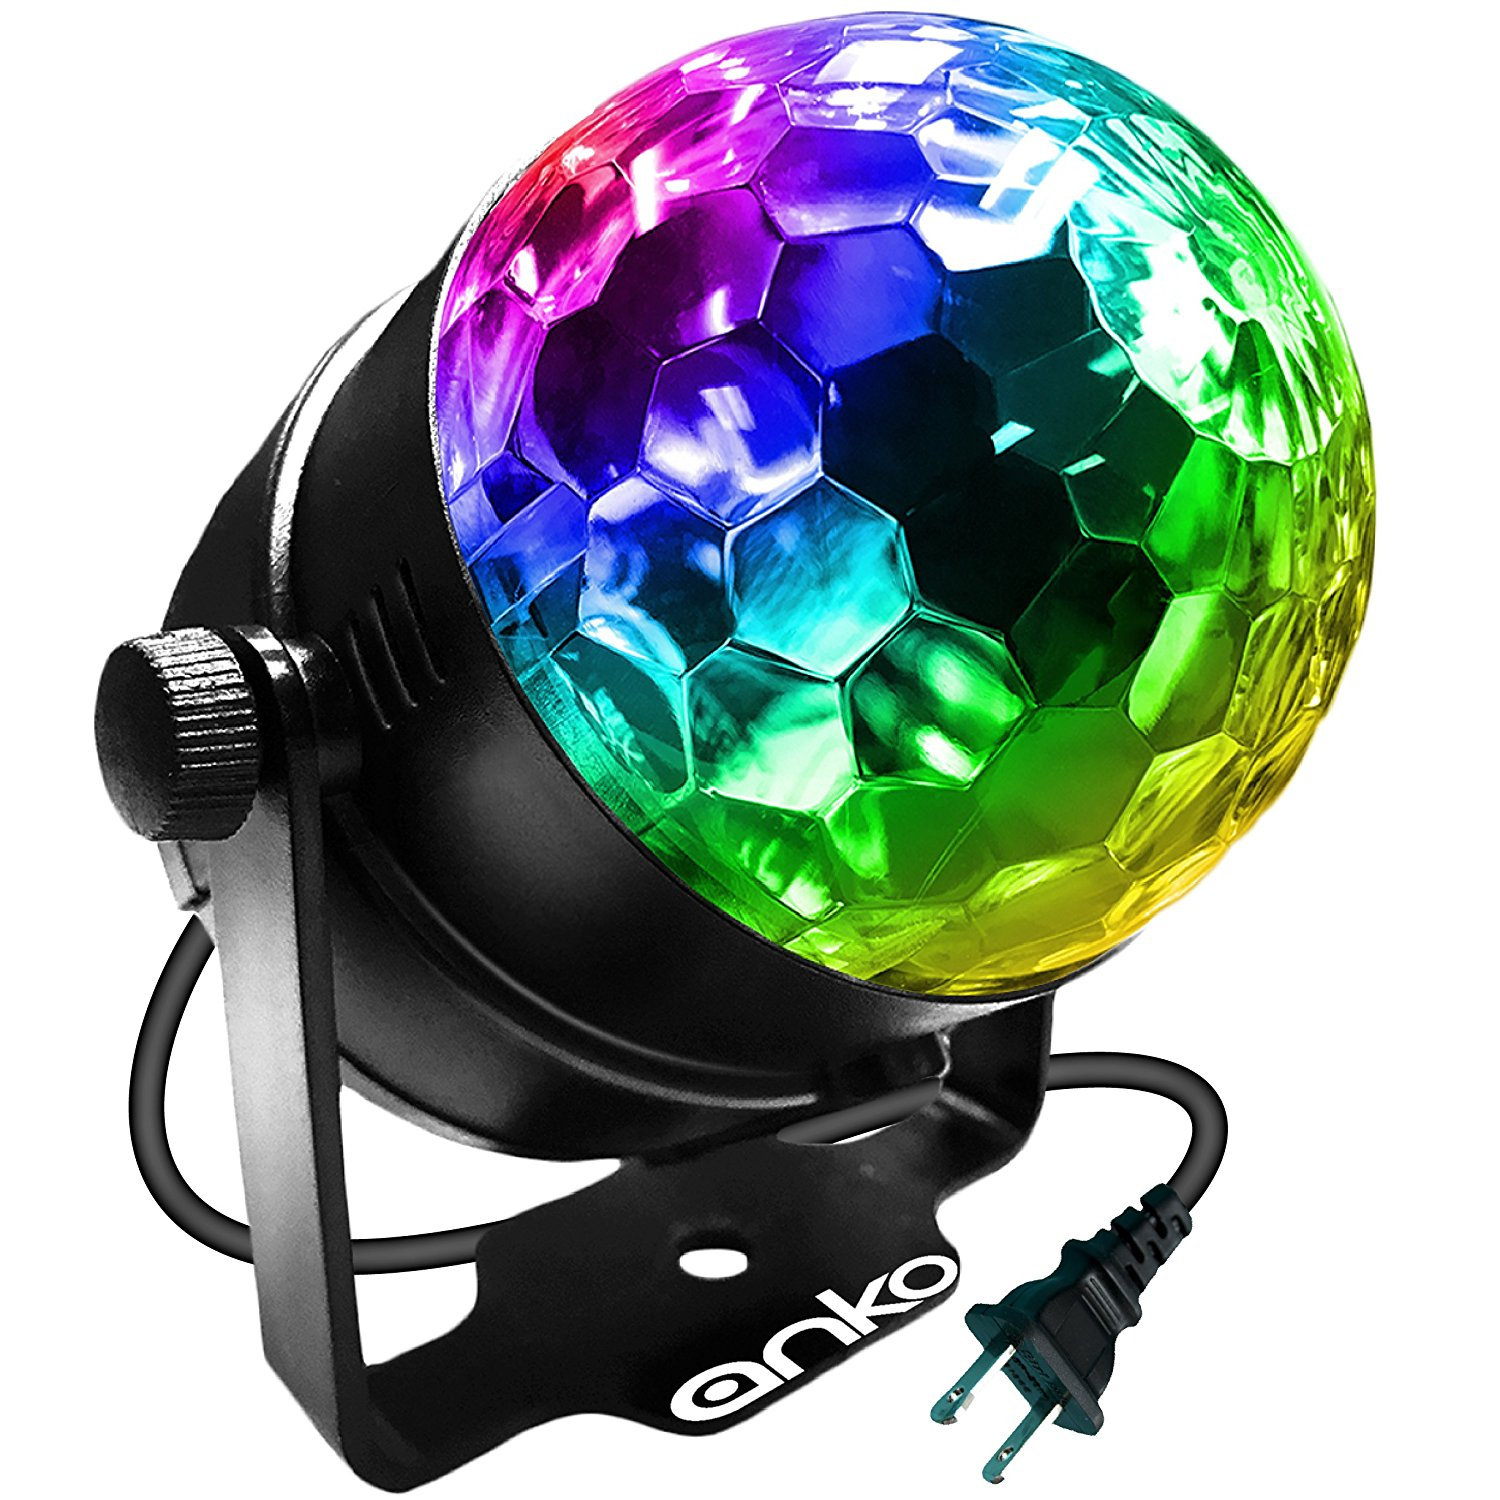 ANKO Mini LED Stage Magic Light, 7 Color Changes Sound Active RGB Mini LED Rotating Magic Ball Lights For KTV, Party,... by